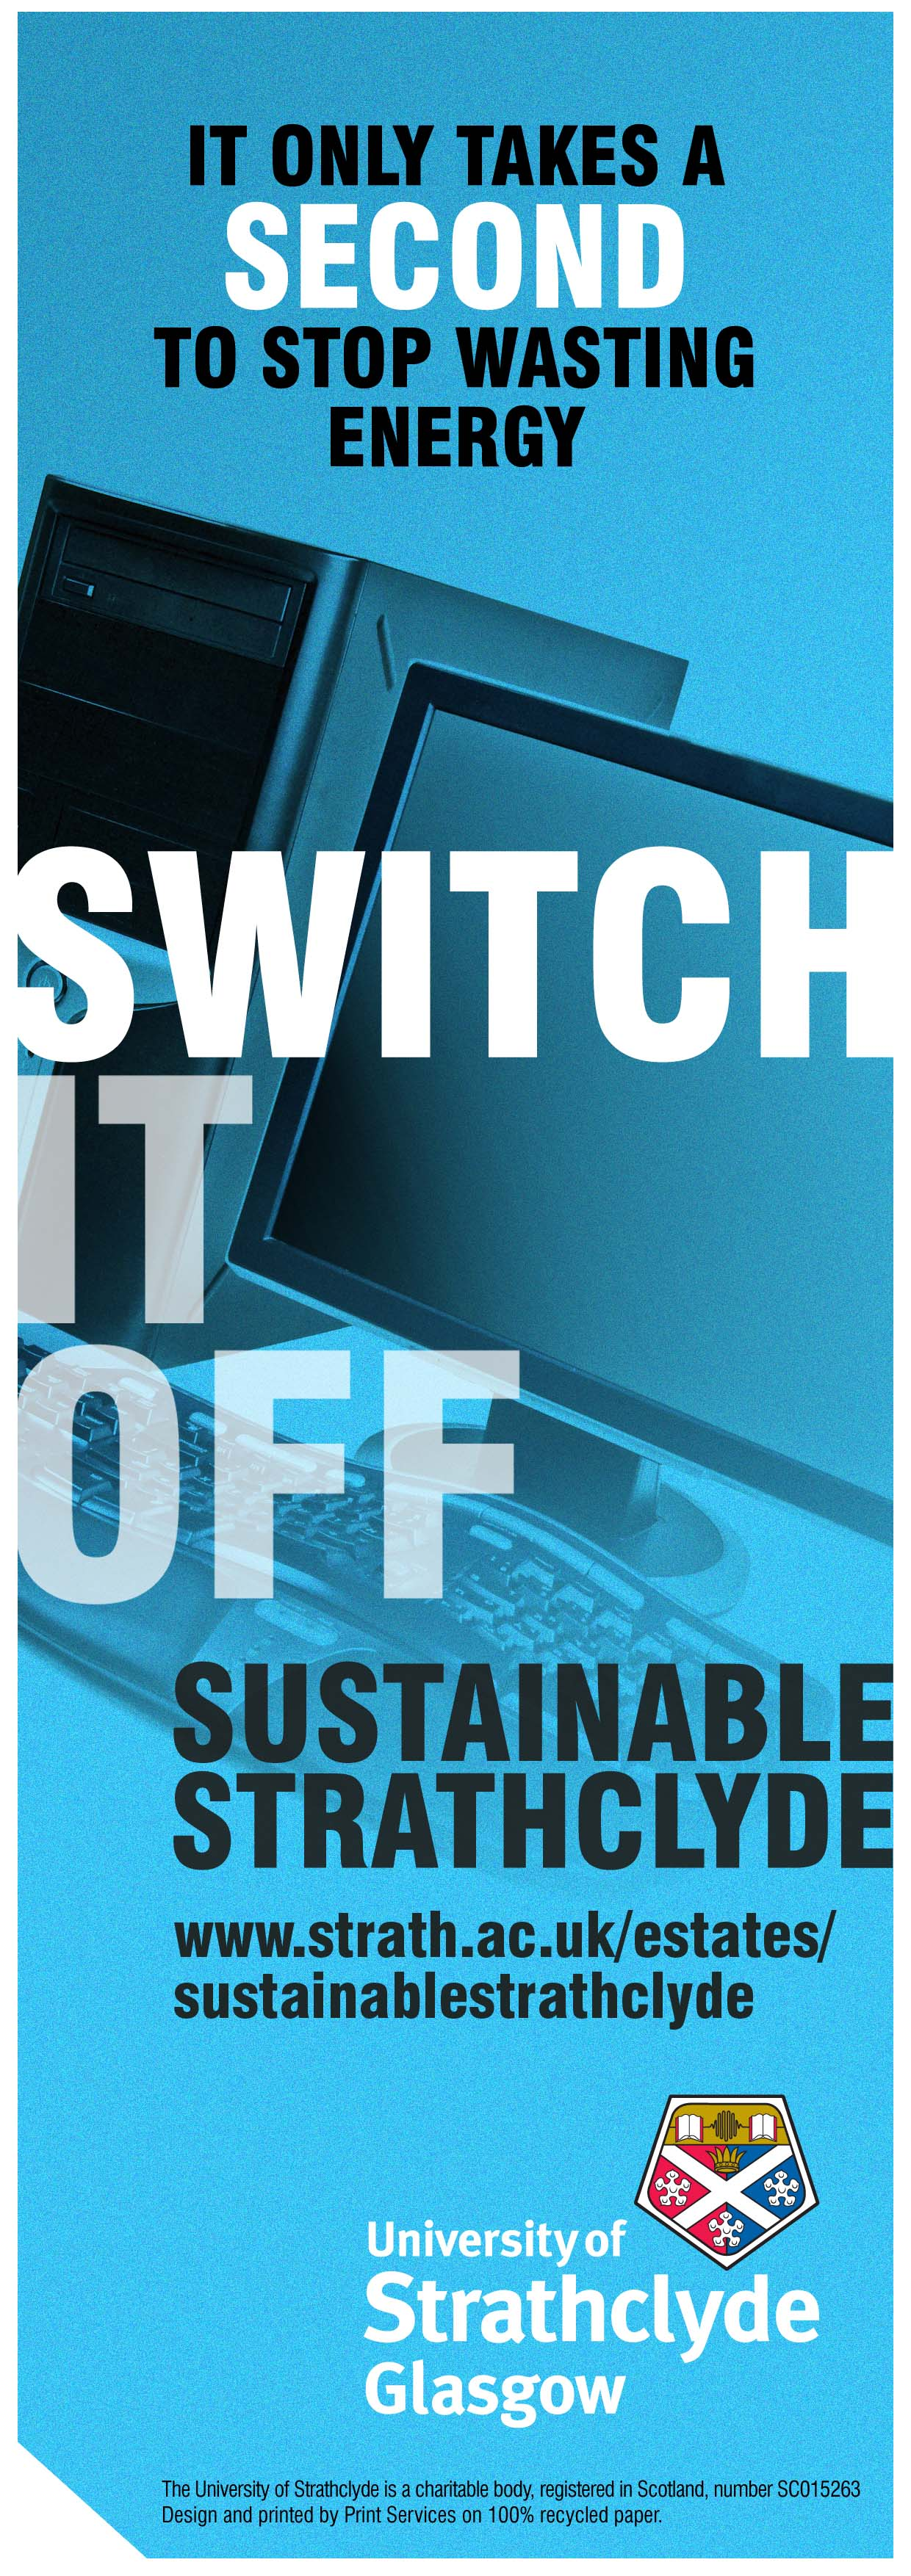 Switch Off Campaign - University of Strathclyde